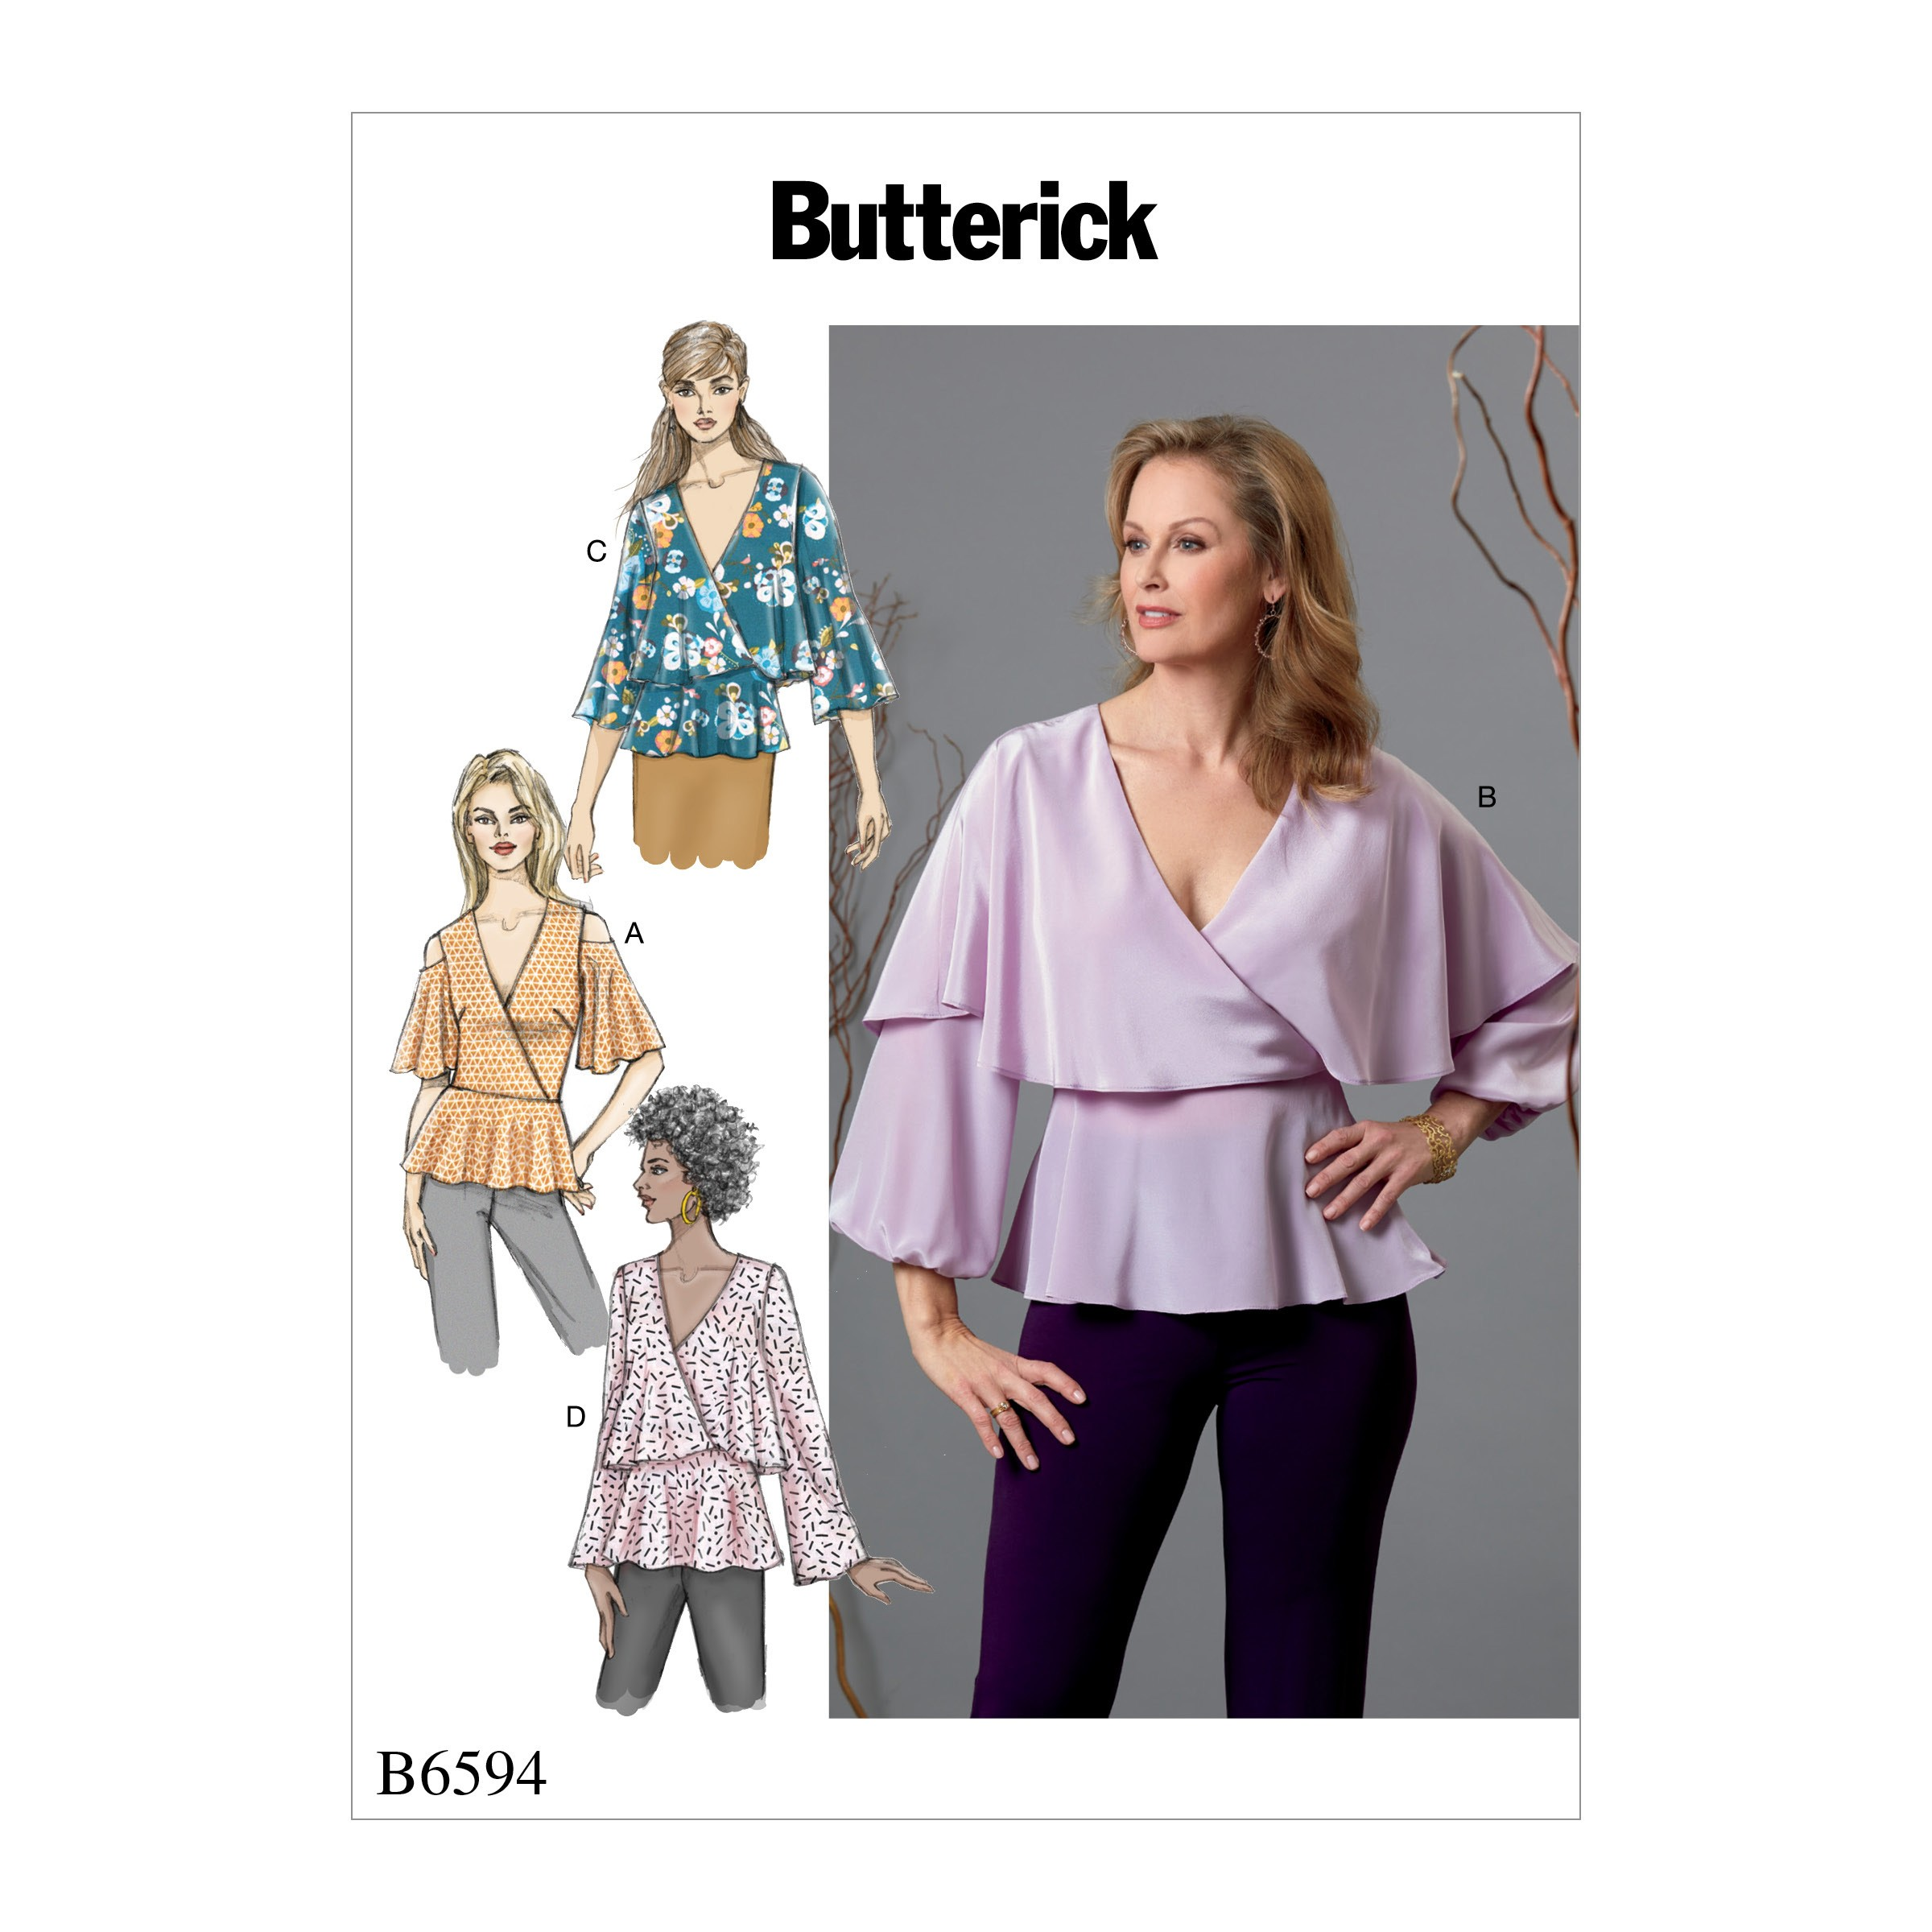 Butterick Sewing Pattern 6594 Misses' Tops with Sleeve & Overlay Options